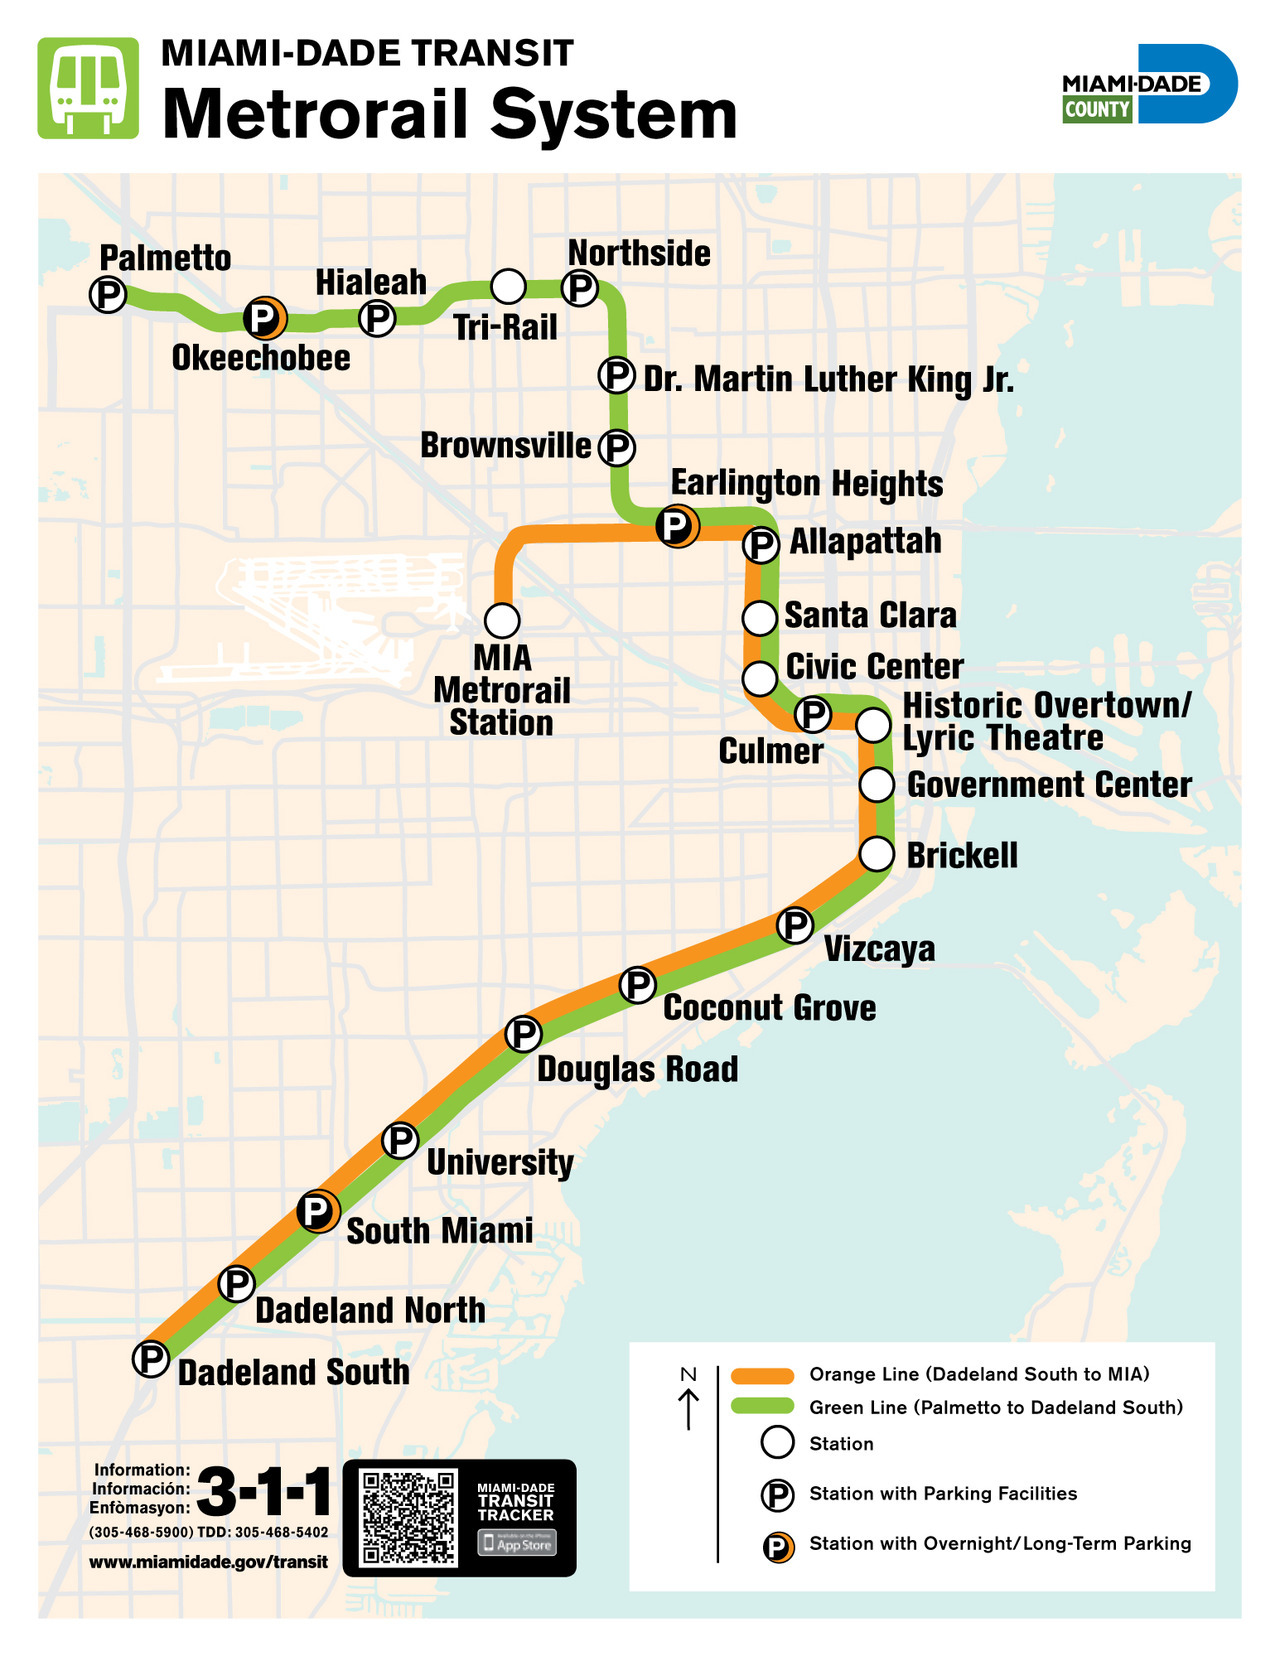 Official Map: Miami-Dade Metrorail System Miami's Metrorail just opened a new station at Miami International Airport, and decided to create an entirely new line (the Orange Line) to celebrate. Along with that, comes a new system map… which is, unfortunately, pretty terrible. Have we been there? No. What we like: The icon for overnight/long-term parking lots is actually pretty neat. What we don't like: Poorly chosen background colours make the road drid hard to distinguish from the background. On that note, why include the road grid at all if none of the roads are labelled? And do we really need to see all the runways and taxiways at MIA? The two route lines are incredibly poorly drawn, with very sloppy curves - especially into the MIA station and between the Civic Center and Culmer stations. There's a slight gap between the lines between South Miami and University stations, so it looks like the lines were drawn separately next to each other, rather than using tools in the software to duplicate or offset one line to create the other. Shonky. Huge and ugly station name labels. Our rating: GIS software really should be taken away from people making transit maps for public consumption. This map is uninspiring, bland and poorly executed. 1 star.  (Source: Official Miami-Dade County website)